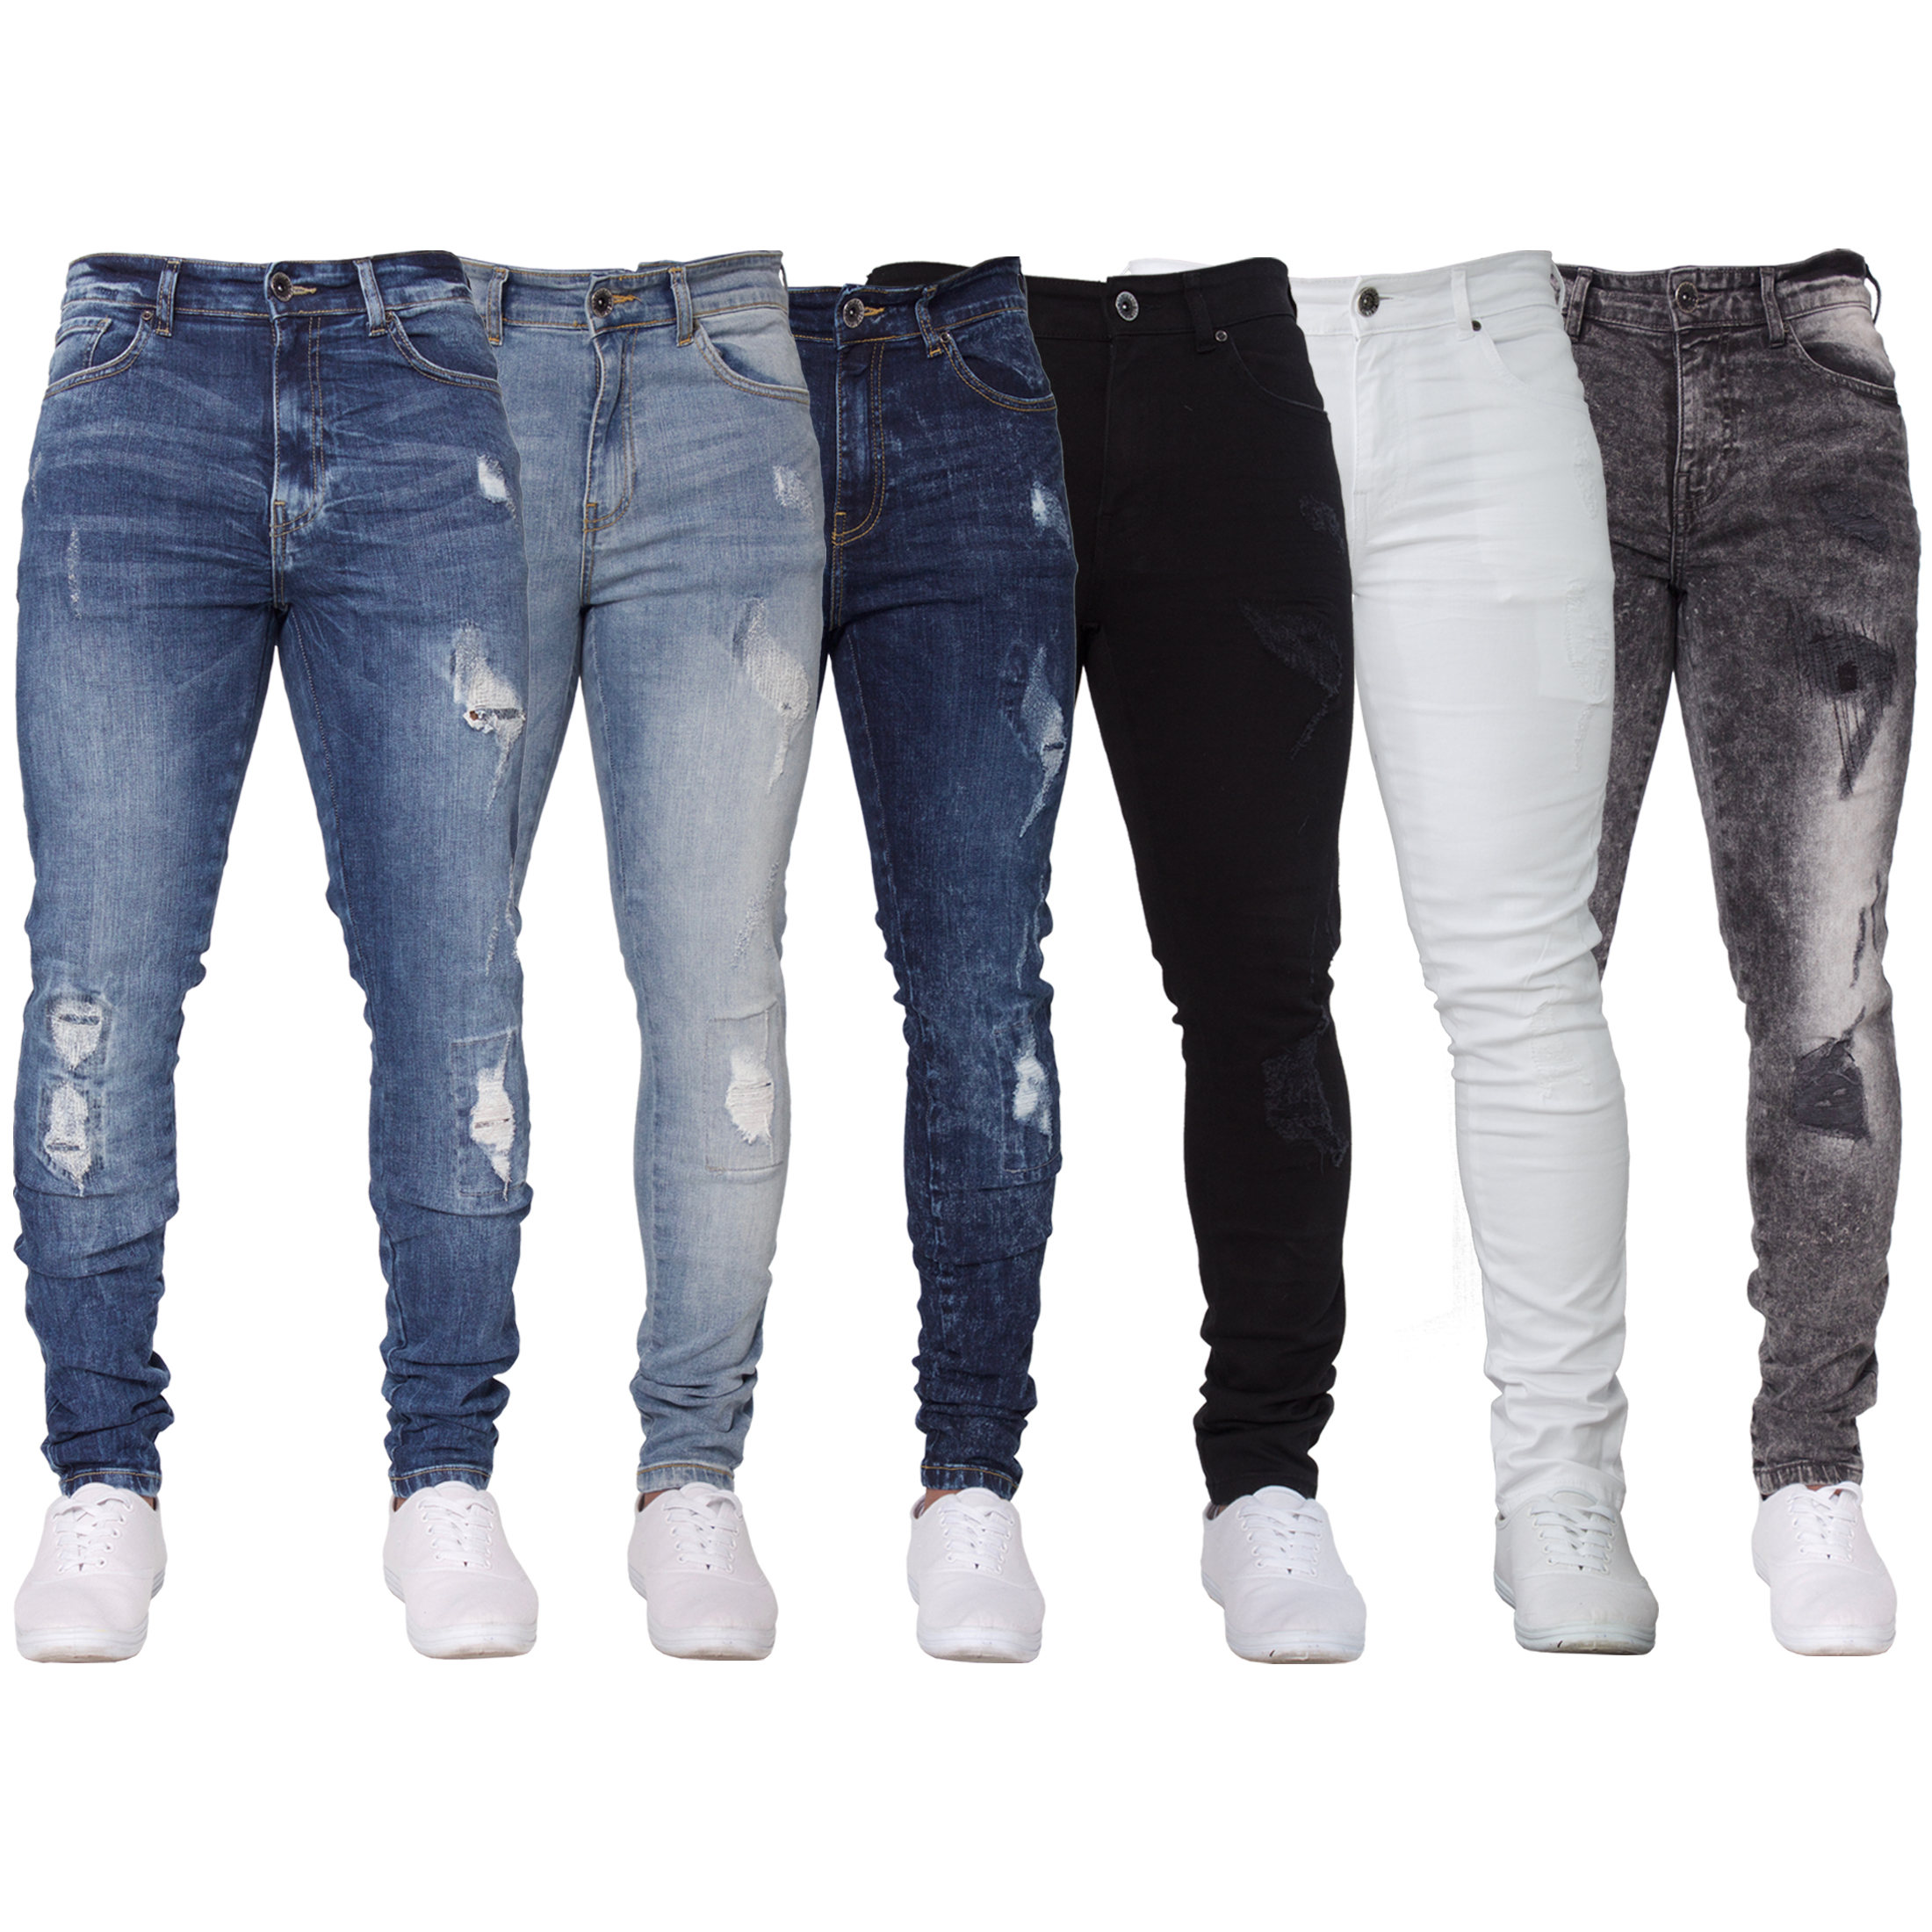 New ENZO Mens Skinny Super Stretch Fit Ripped Denim Jeans ...